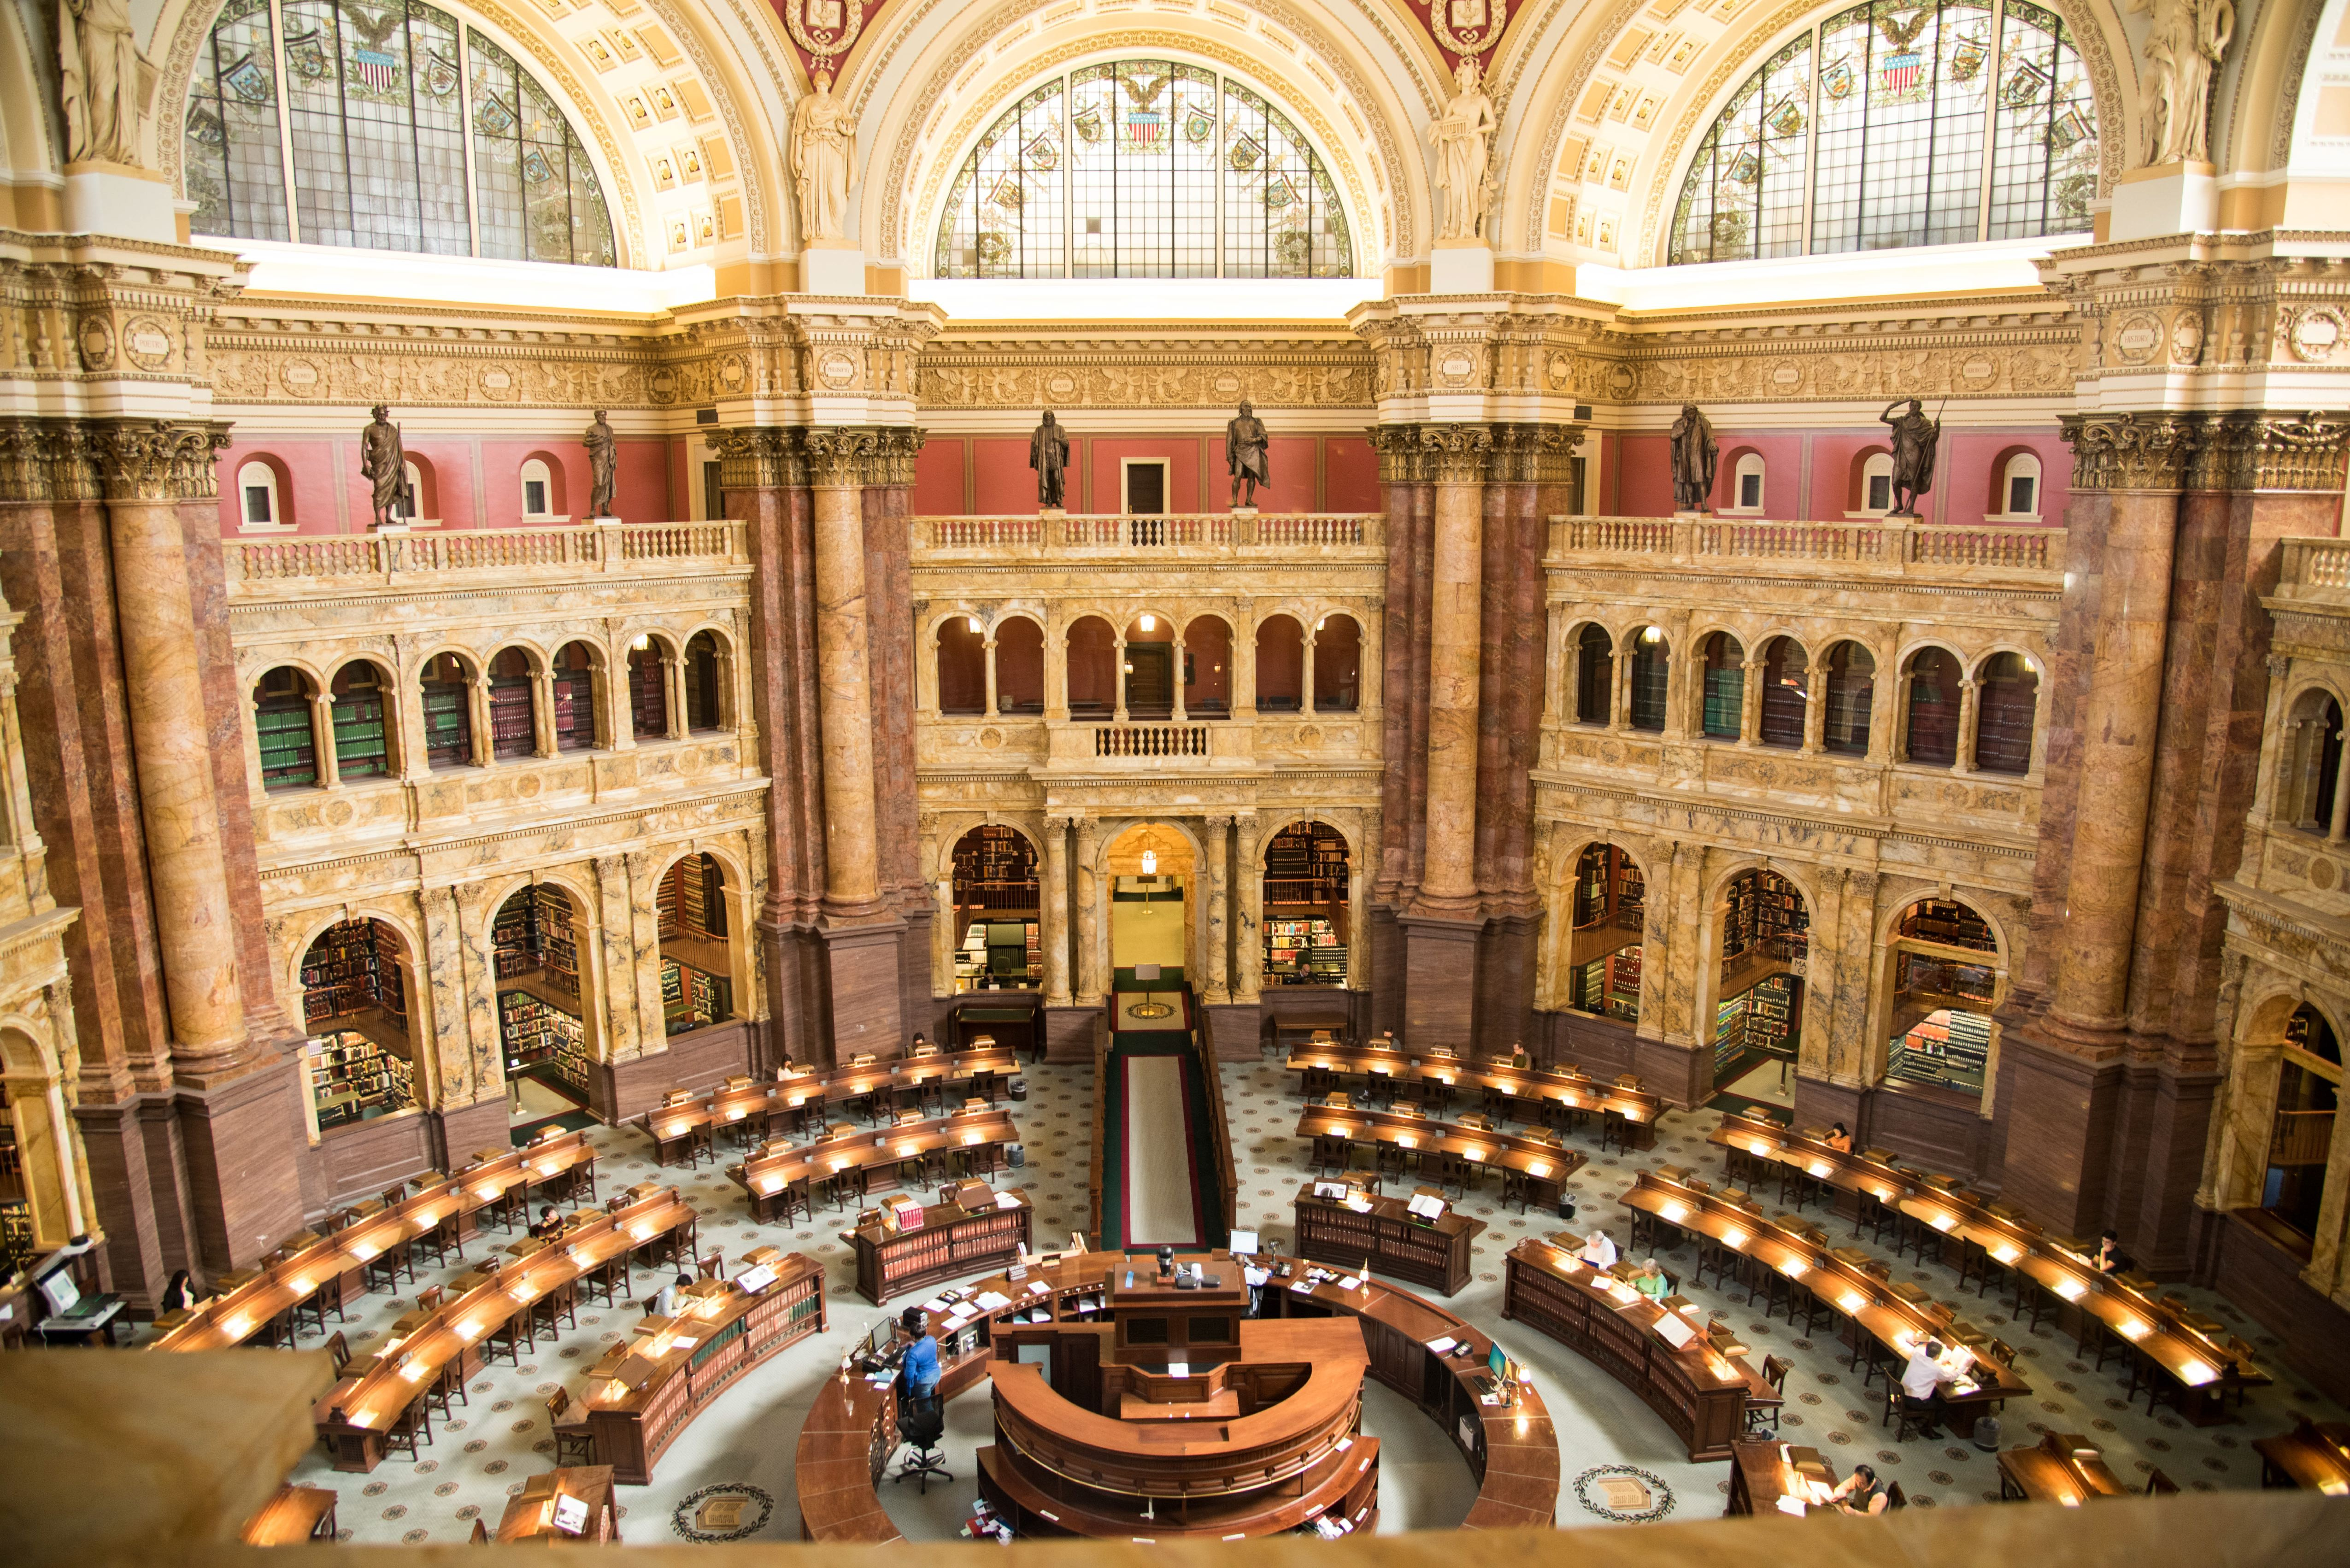 Main reading room of the Library of Congress, Washington, D.C.